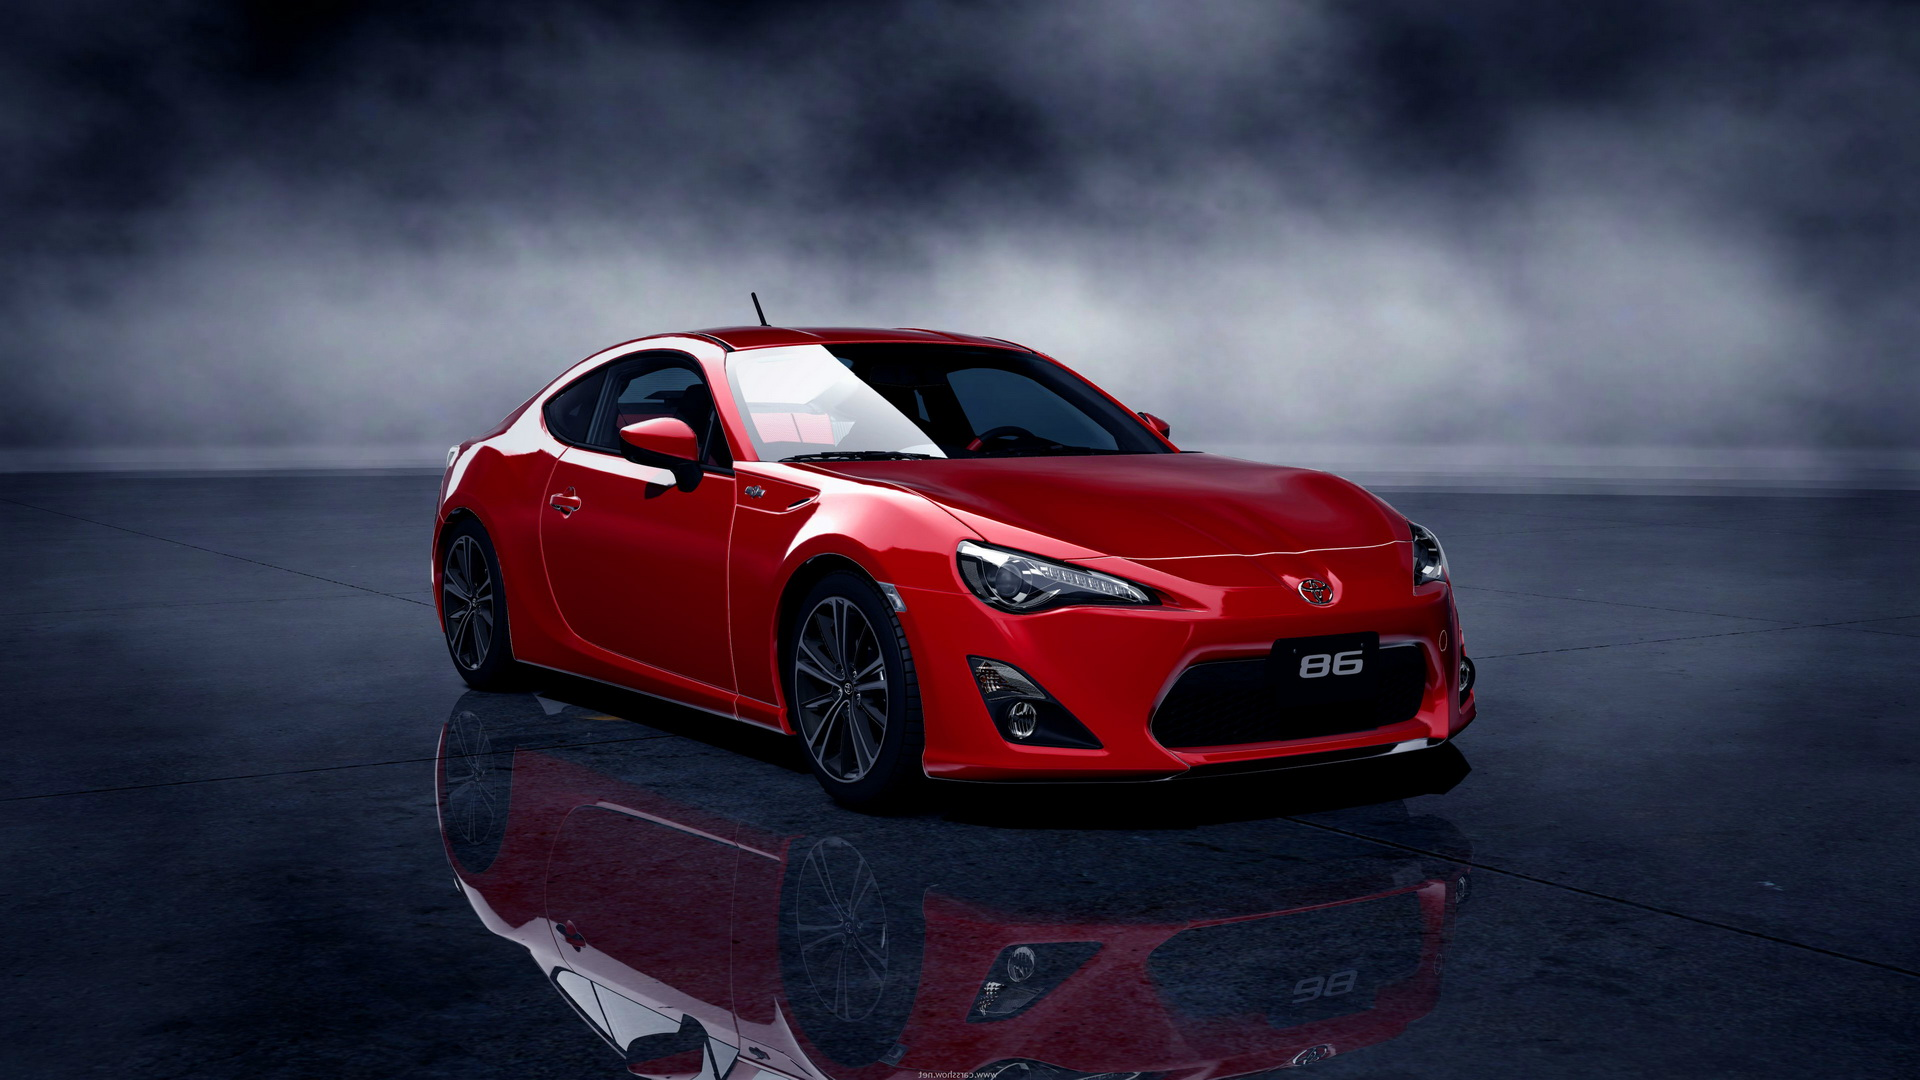 Gt86 Car Wallpaper Toyota Gt 86 Wallpapers High Quality Download Free